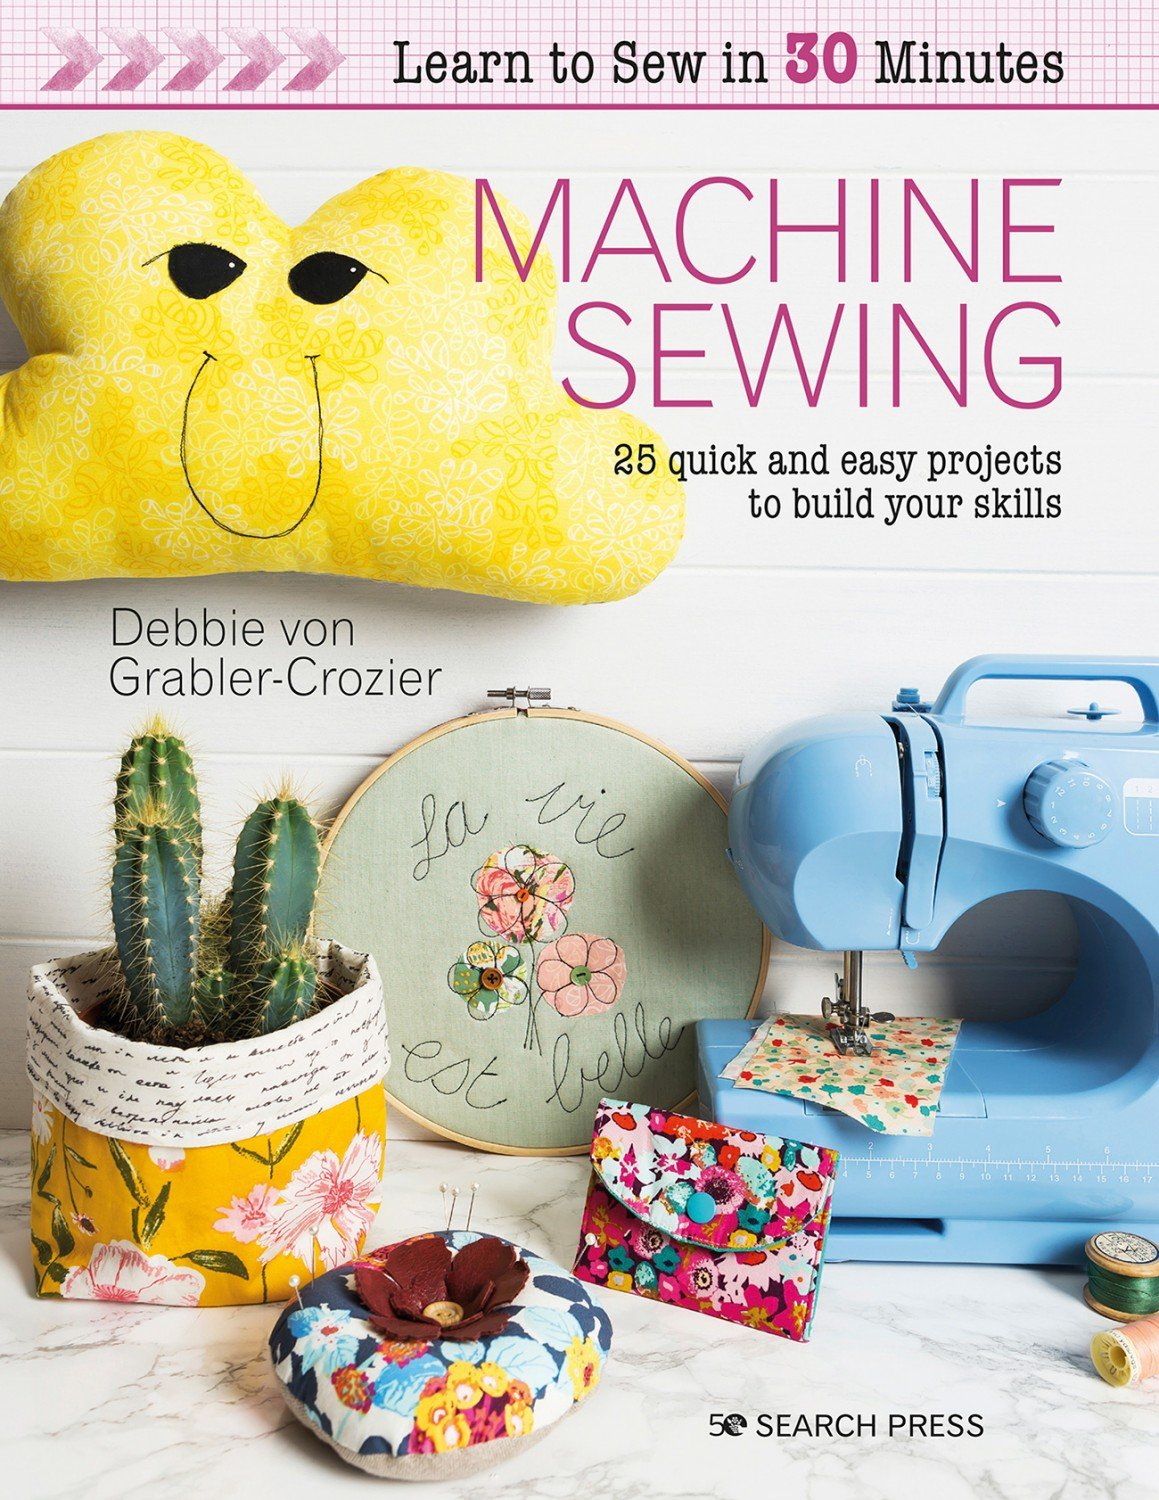 Learn to Sew in 30 Minutes Machine Sewing